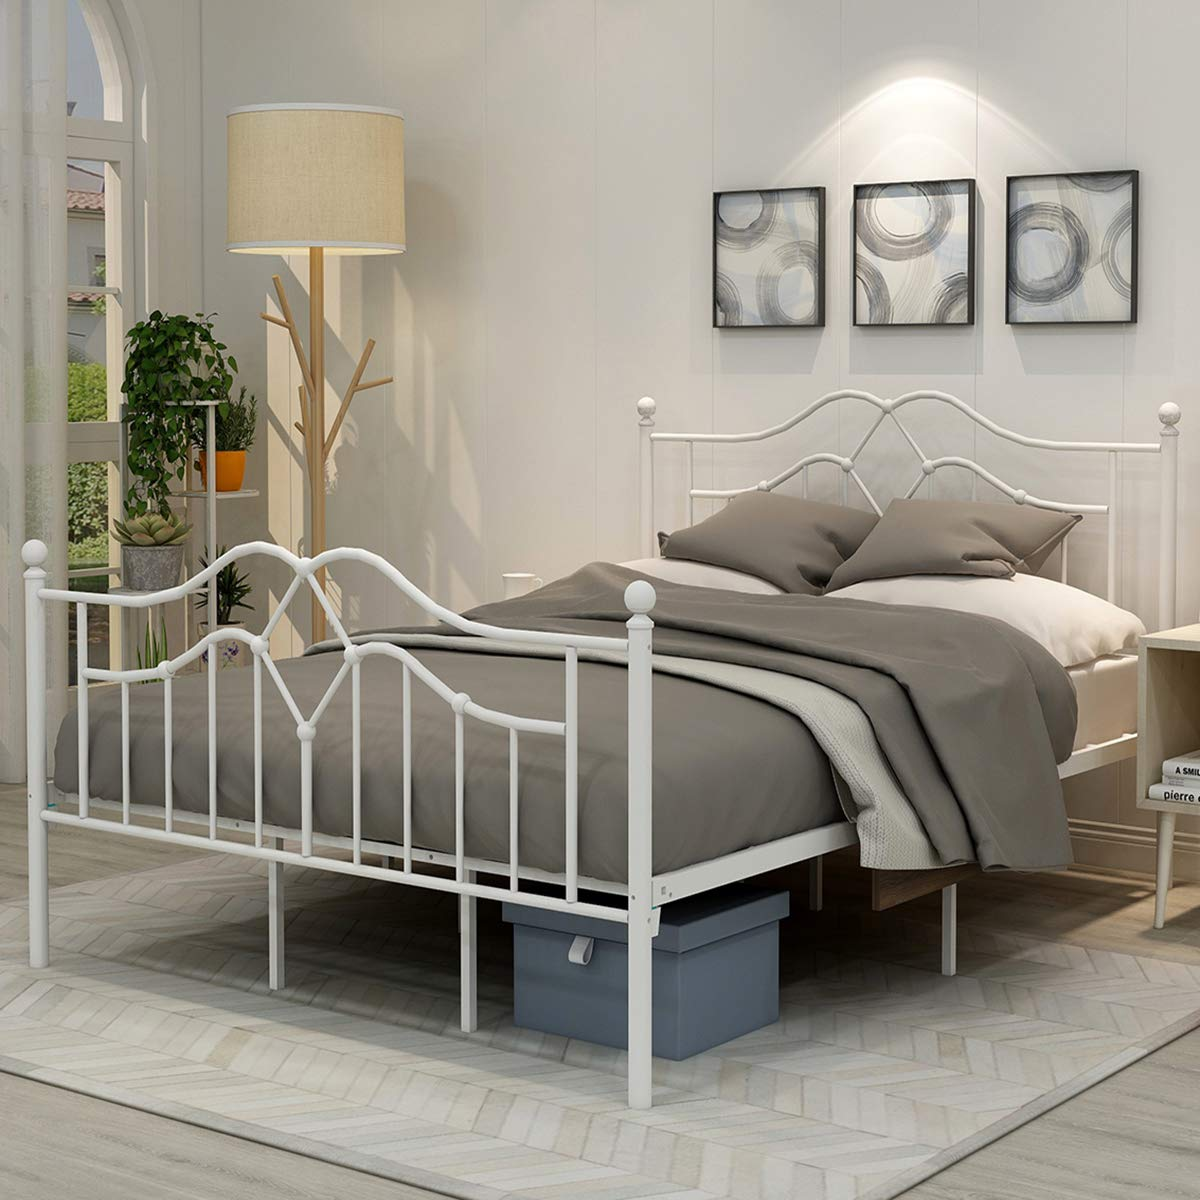 Metal Bed Frame Queen Size Platform No Box Spring Needed